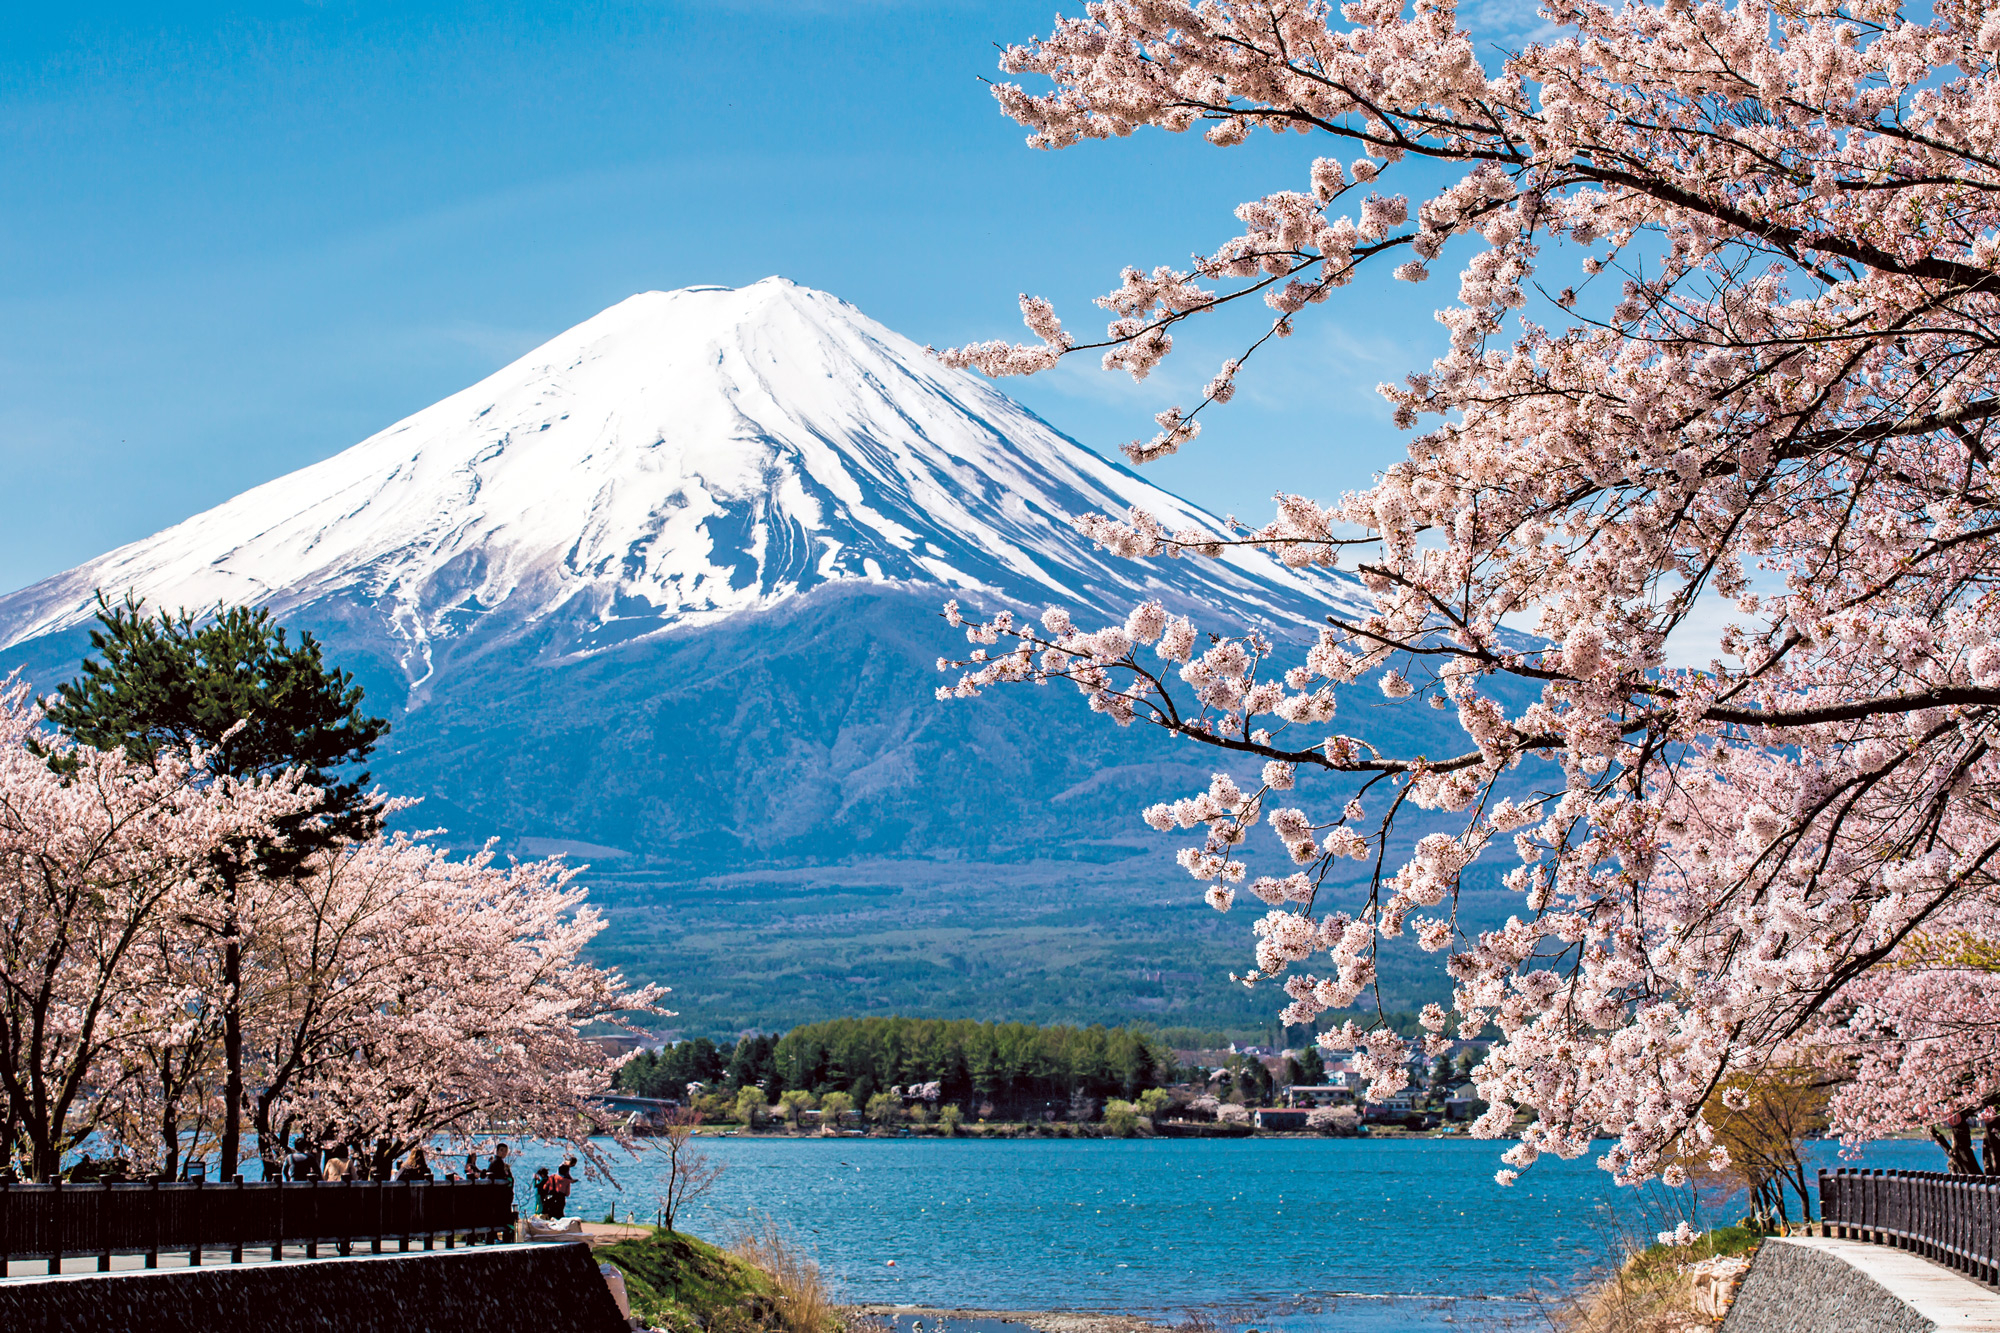 Essential Japan 20182019 By Scenic Luxury Cruises  Tours -5423